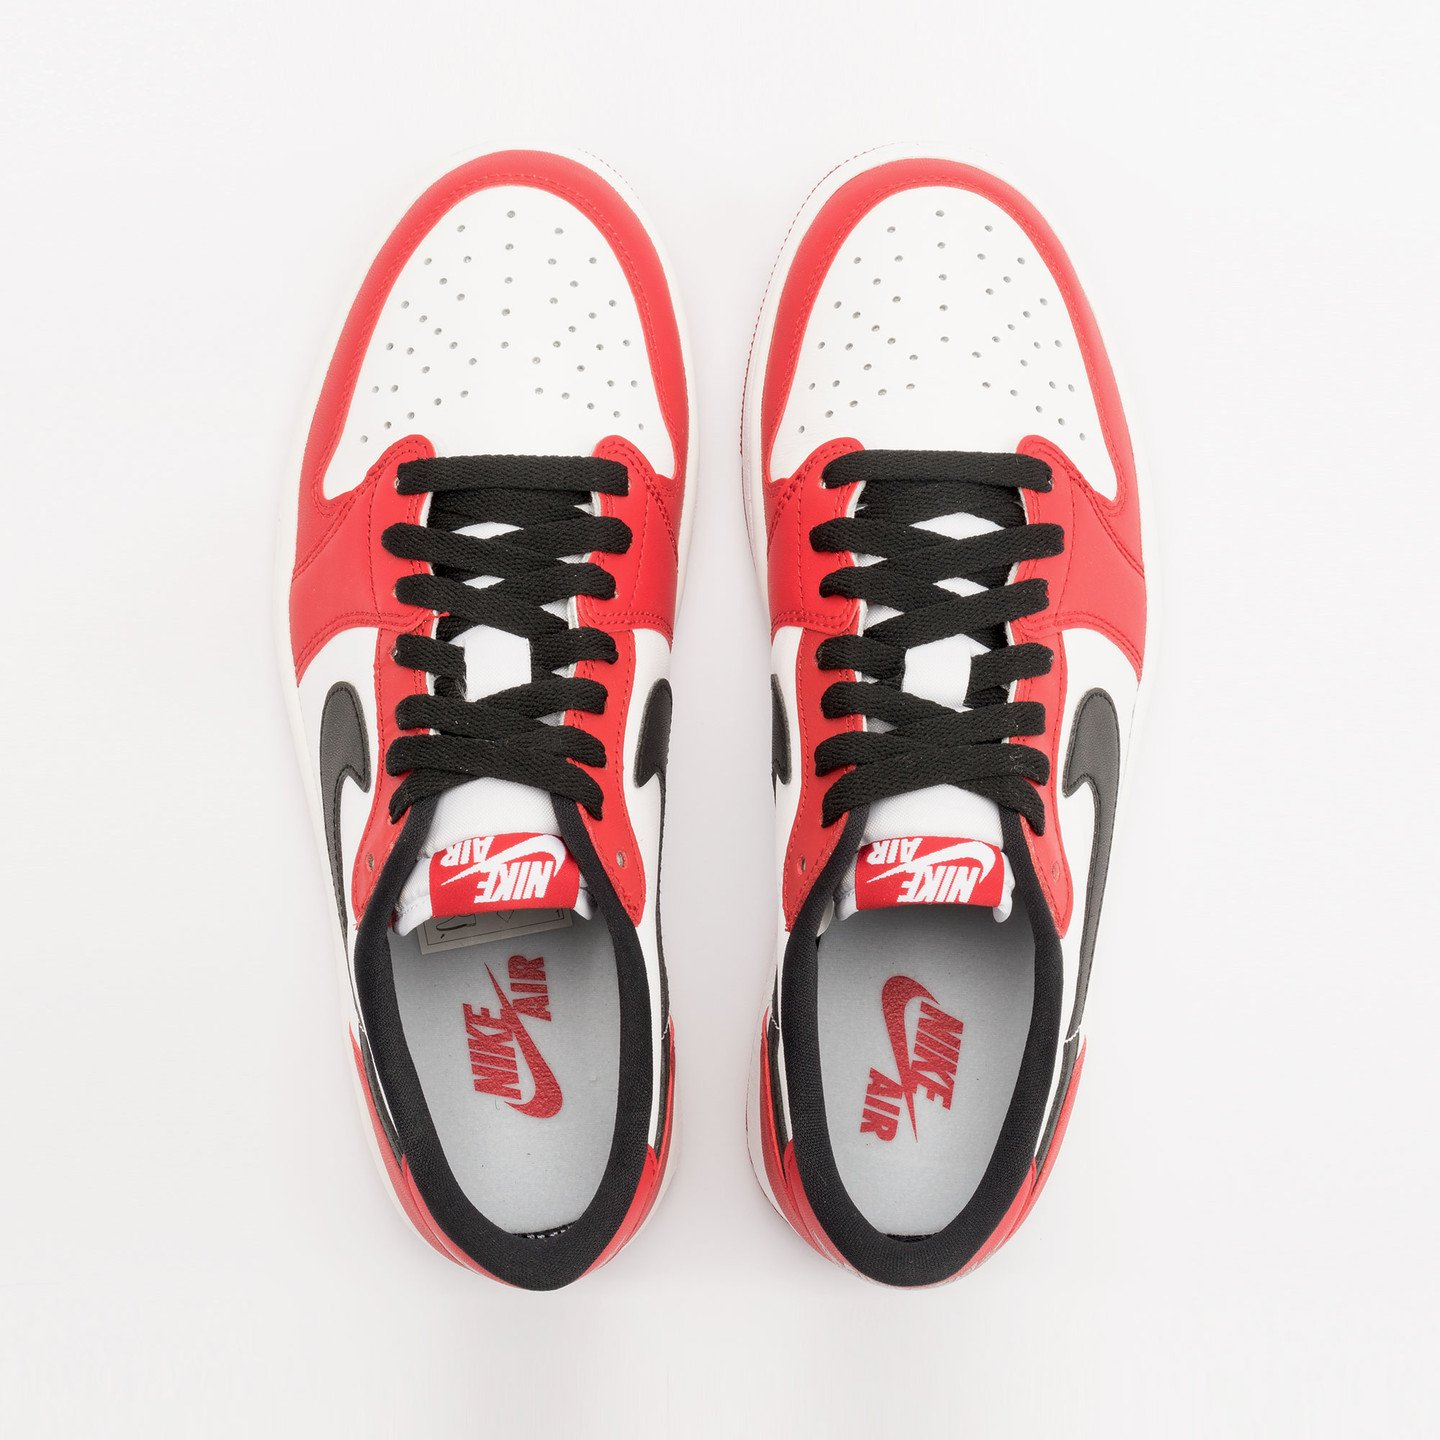 Nike Air Jordan 1 Retro Low OG 'Chicago' Varsity Red / Black / White 705329-600-45